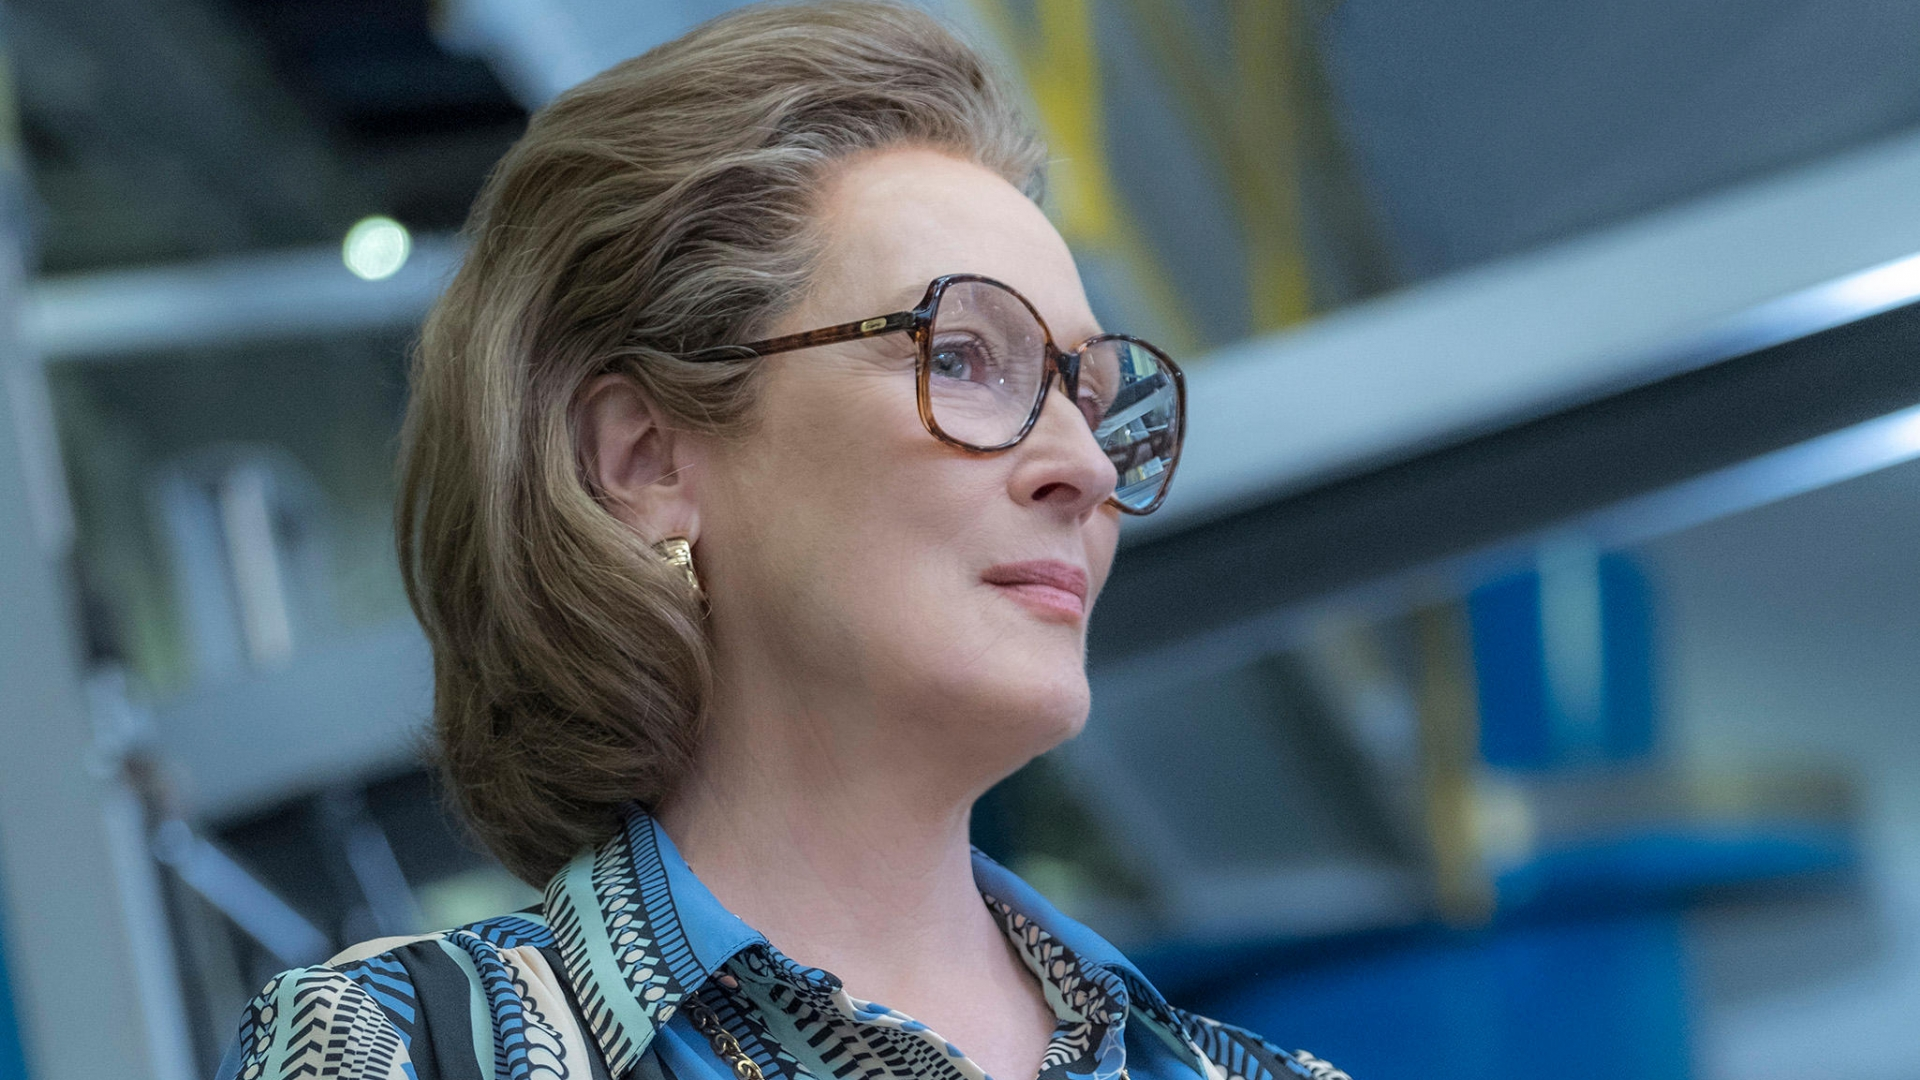 Meryl Streep as Katherine Graham in The Post. (Credit: Twentieth Century Fox/Entertainment Pictures/Alamy Stock Photo)